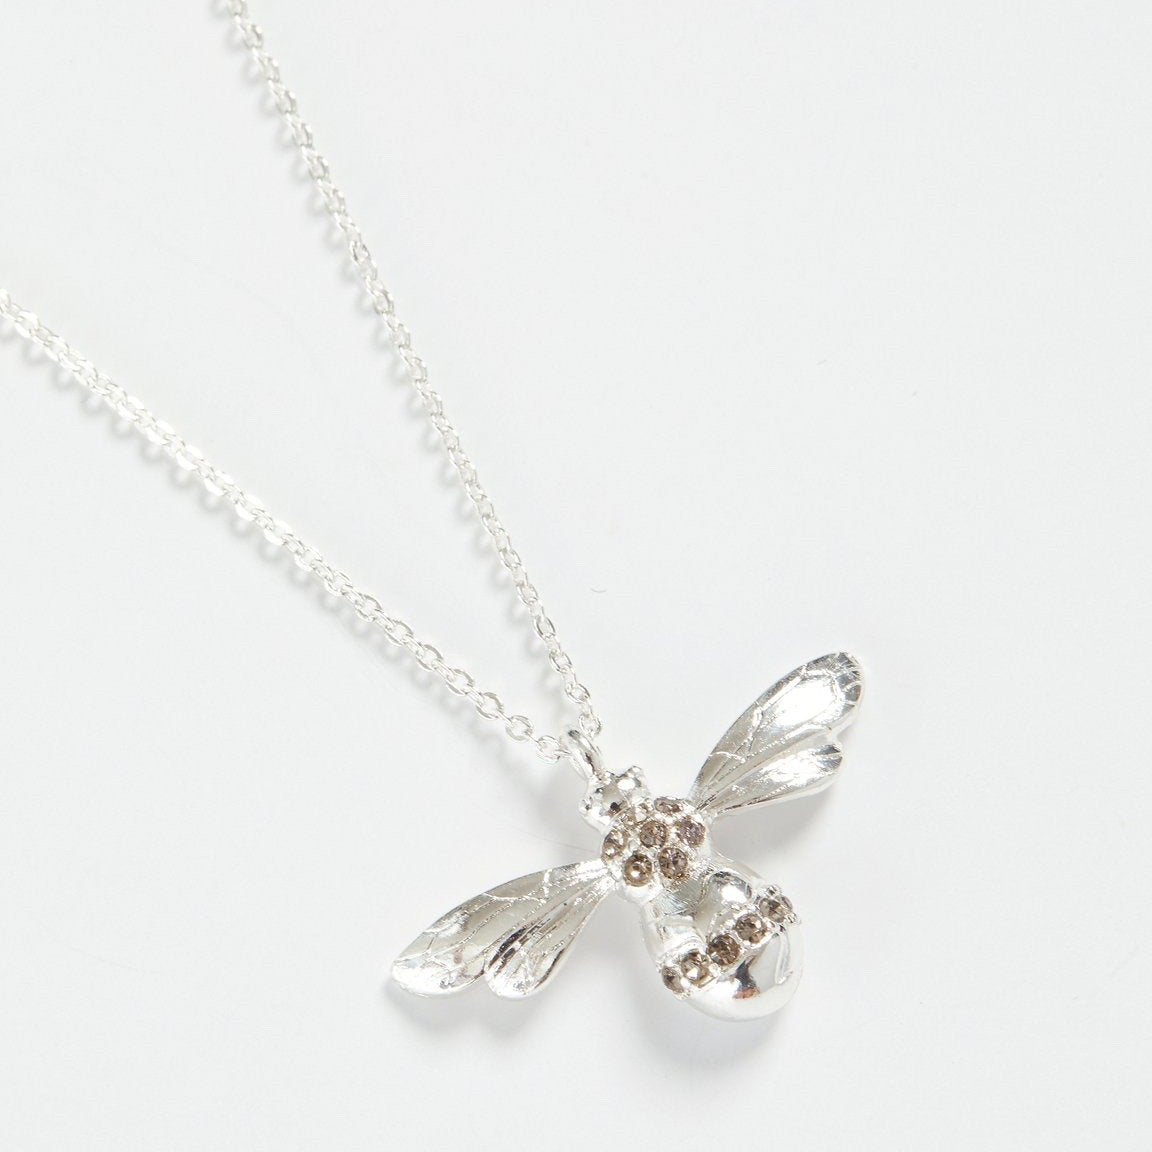 Fable Silver Pave Bee Long Necklace | Putti fine Fashions